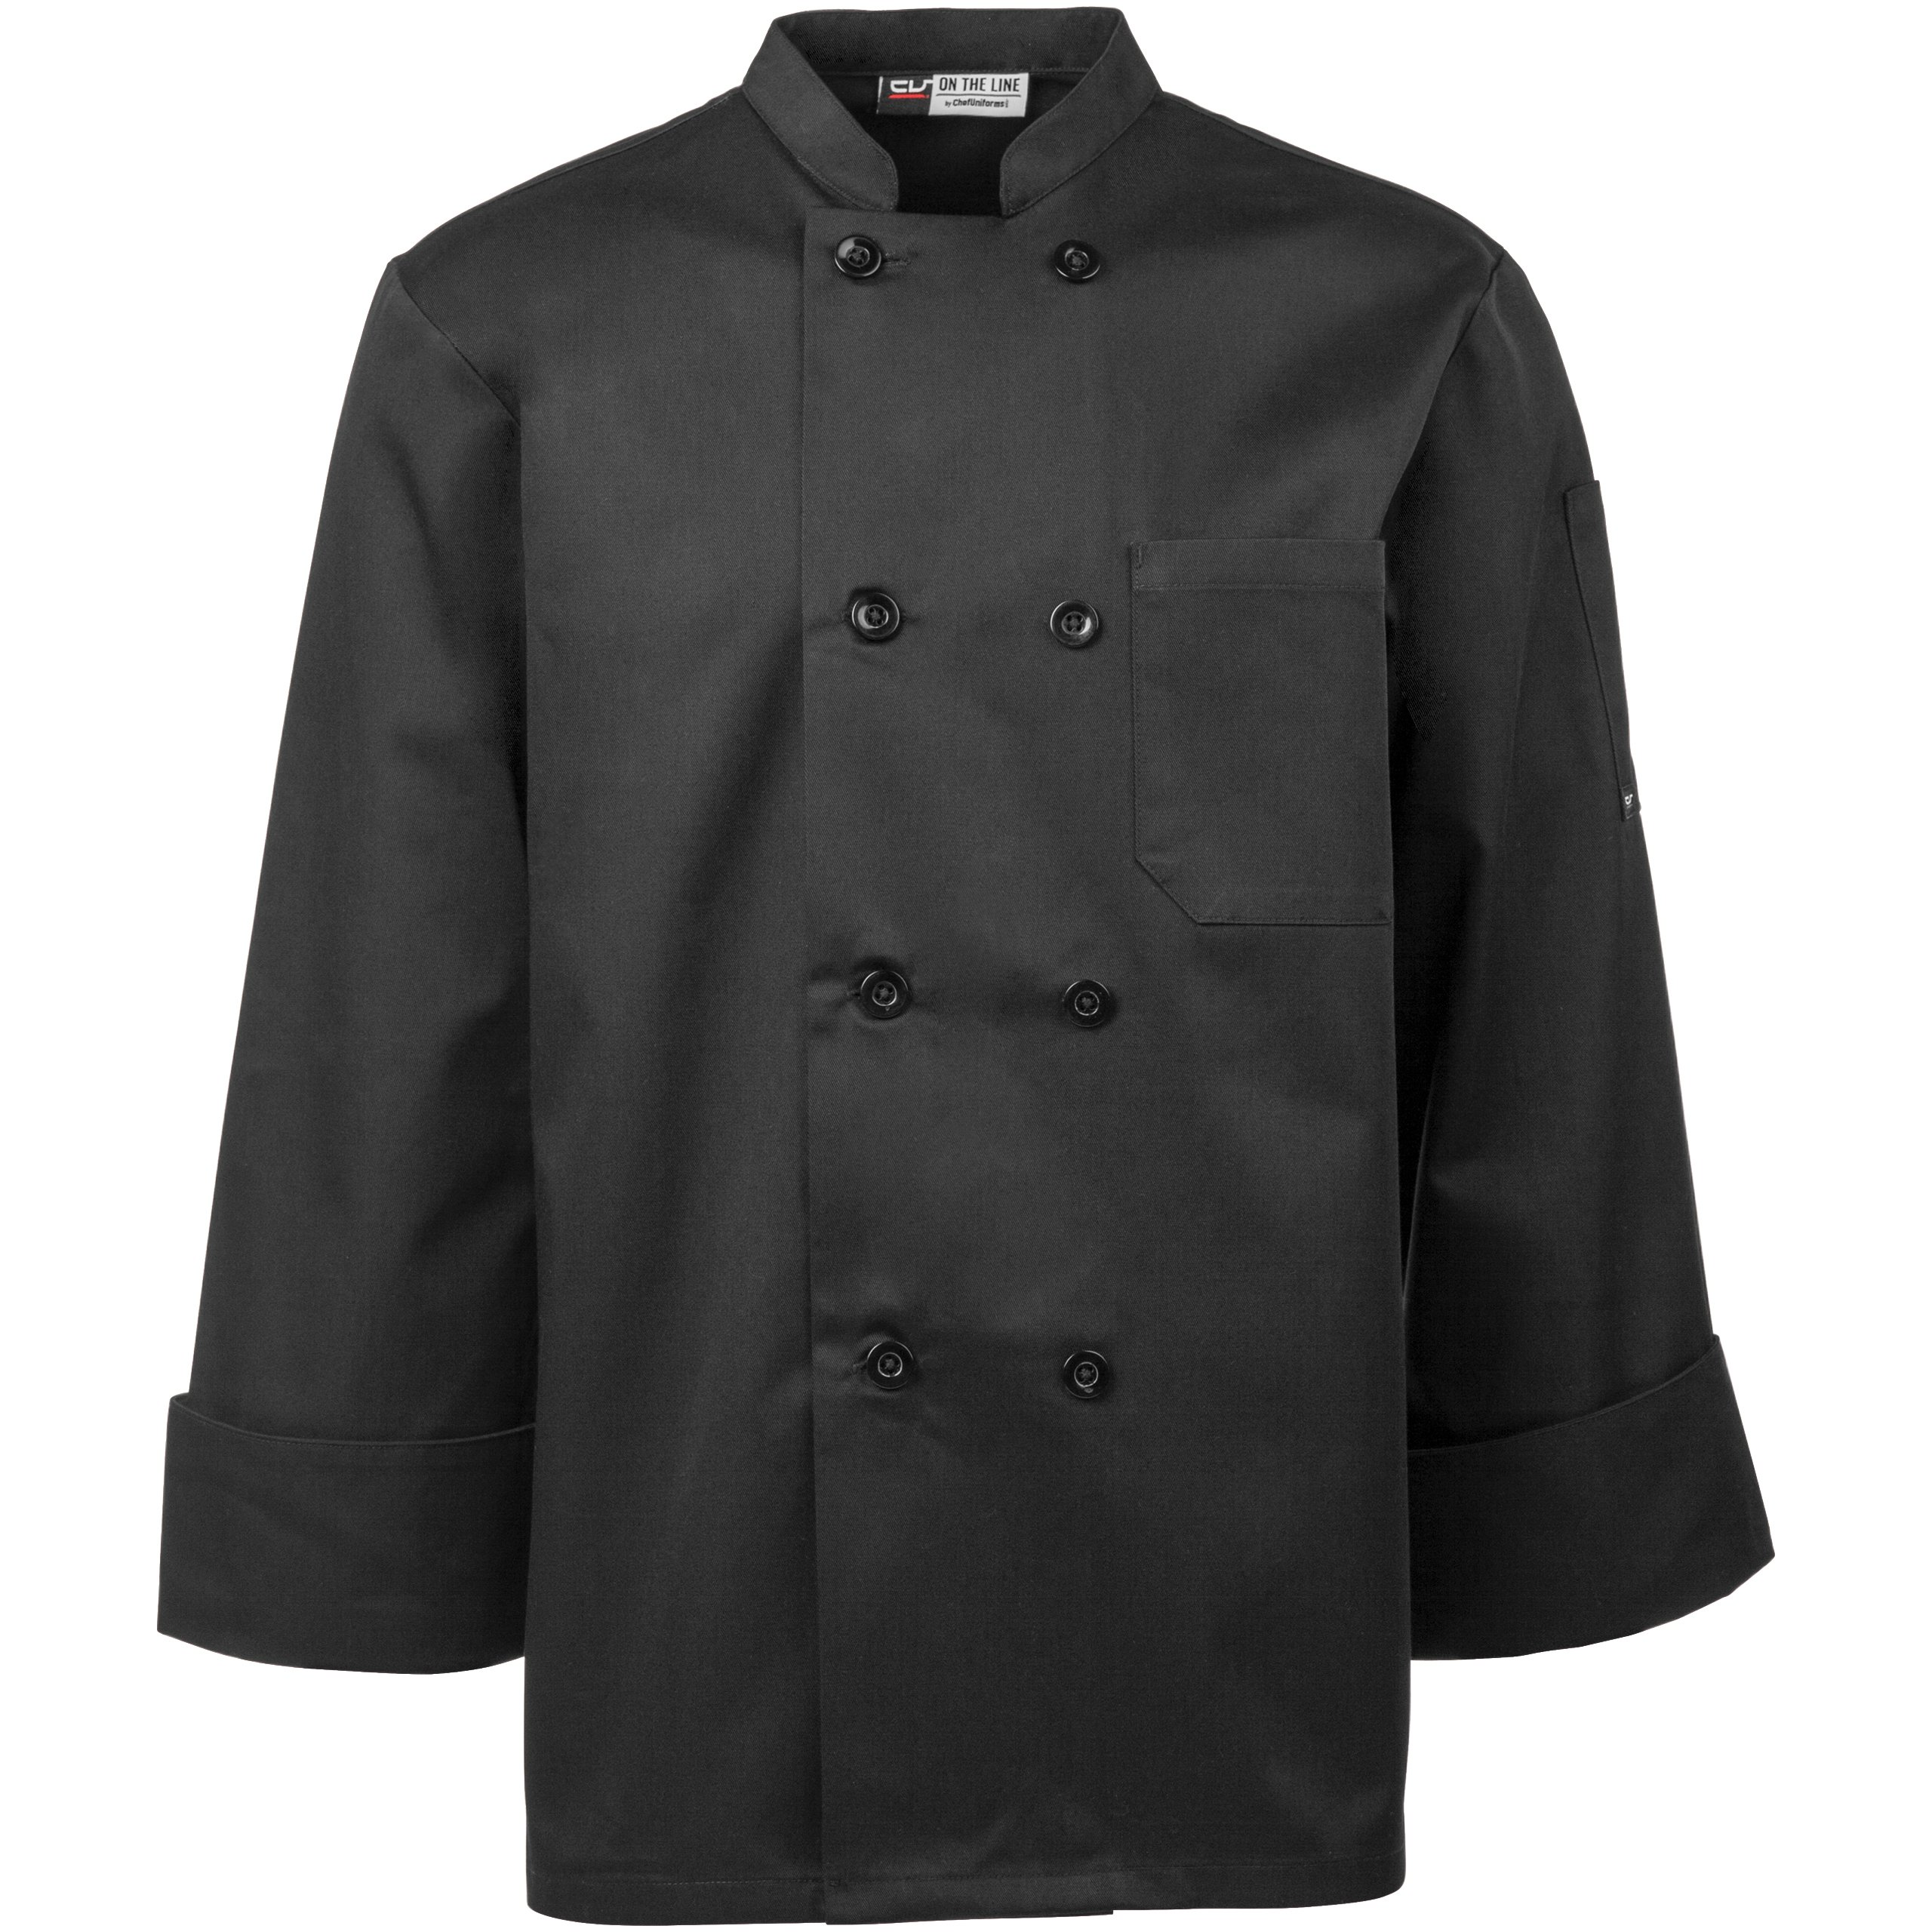 On The Line Men's Long Sleeve Chef Coat (S-2X, 2 Colors) by On The Line (Image #2)